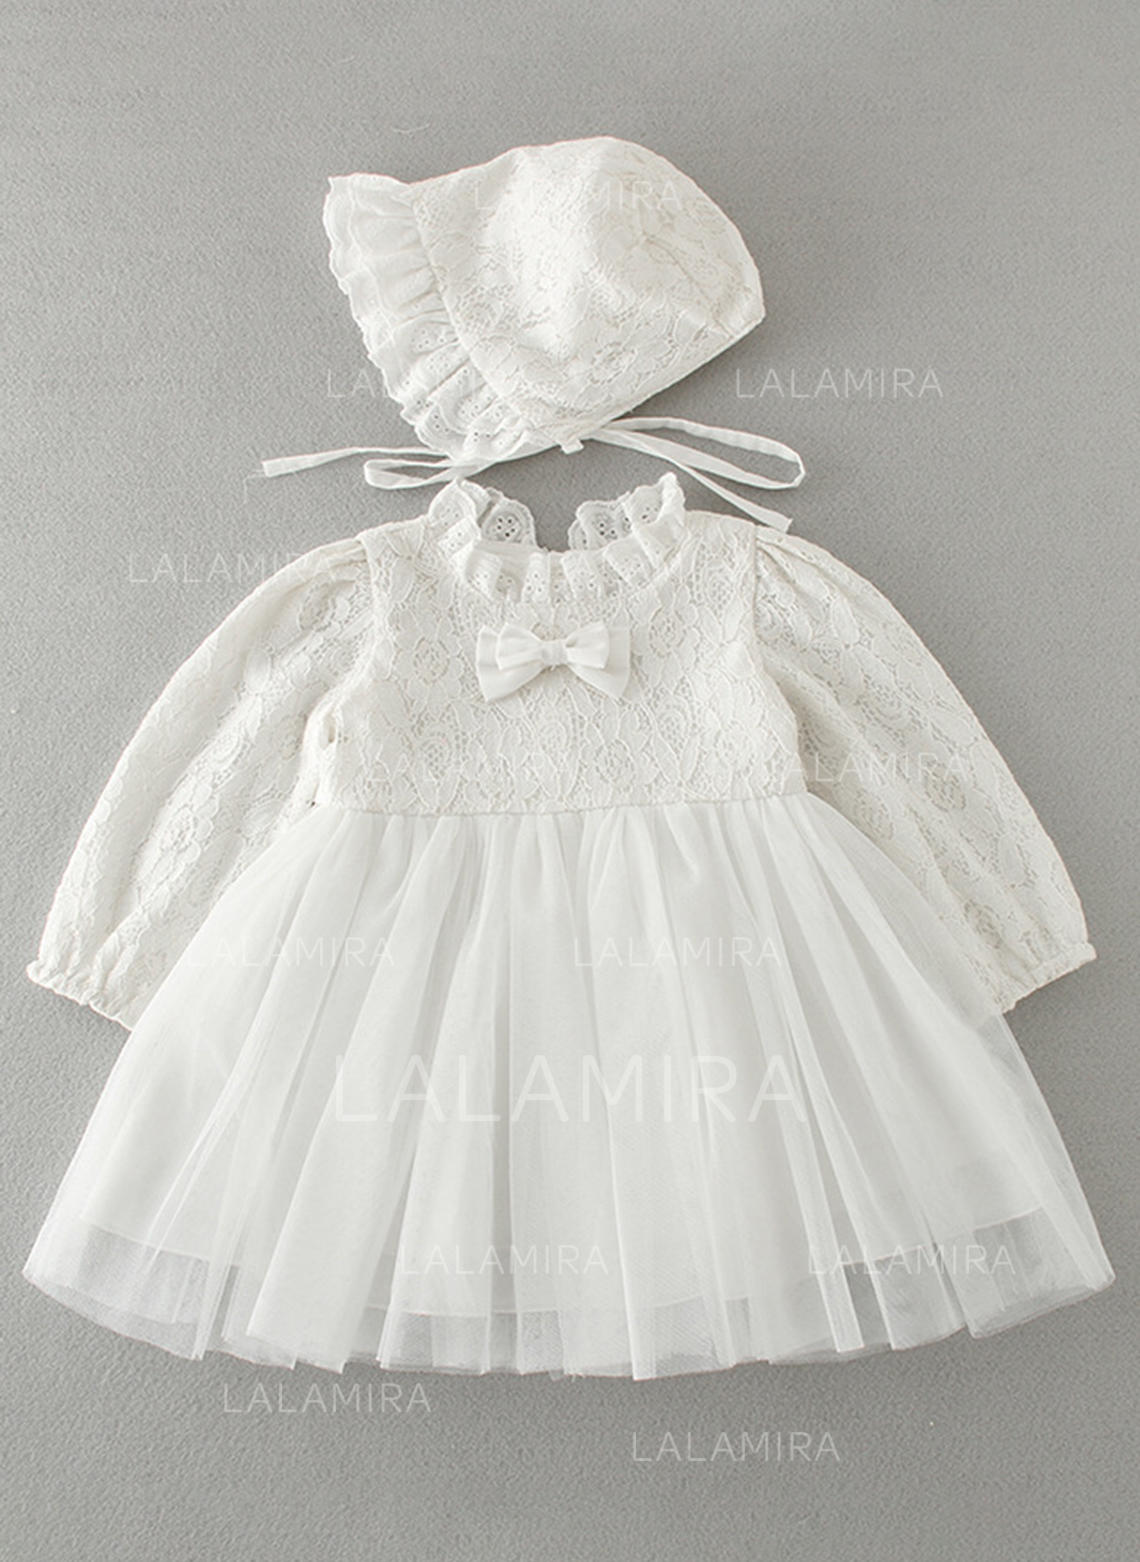 bb1eae38670 Tulle Lace Peter Pan Collar Baby Girl s Christening Gowns With Long Sleeves  (2001216778). Loading zoom